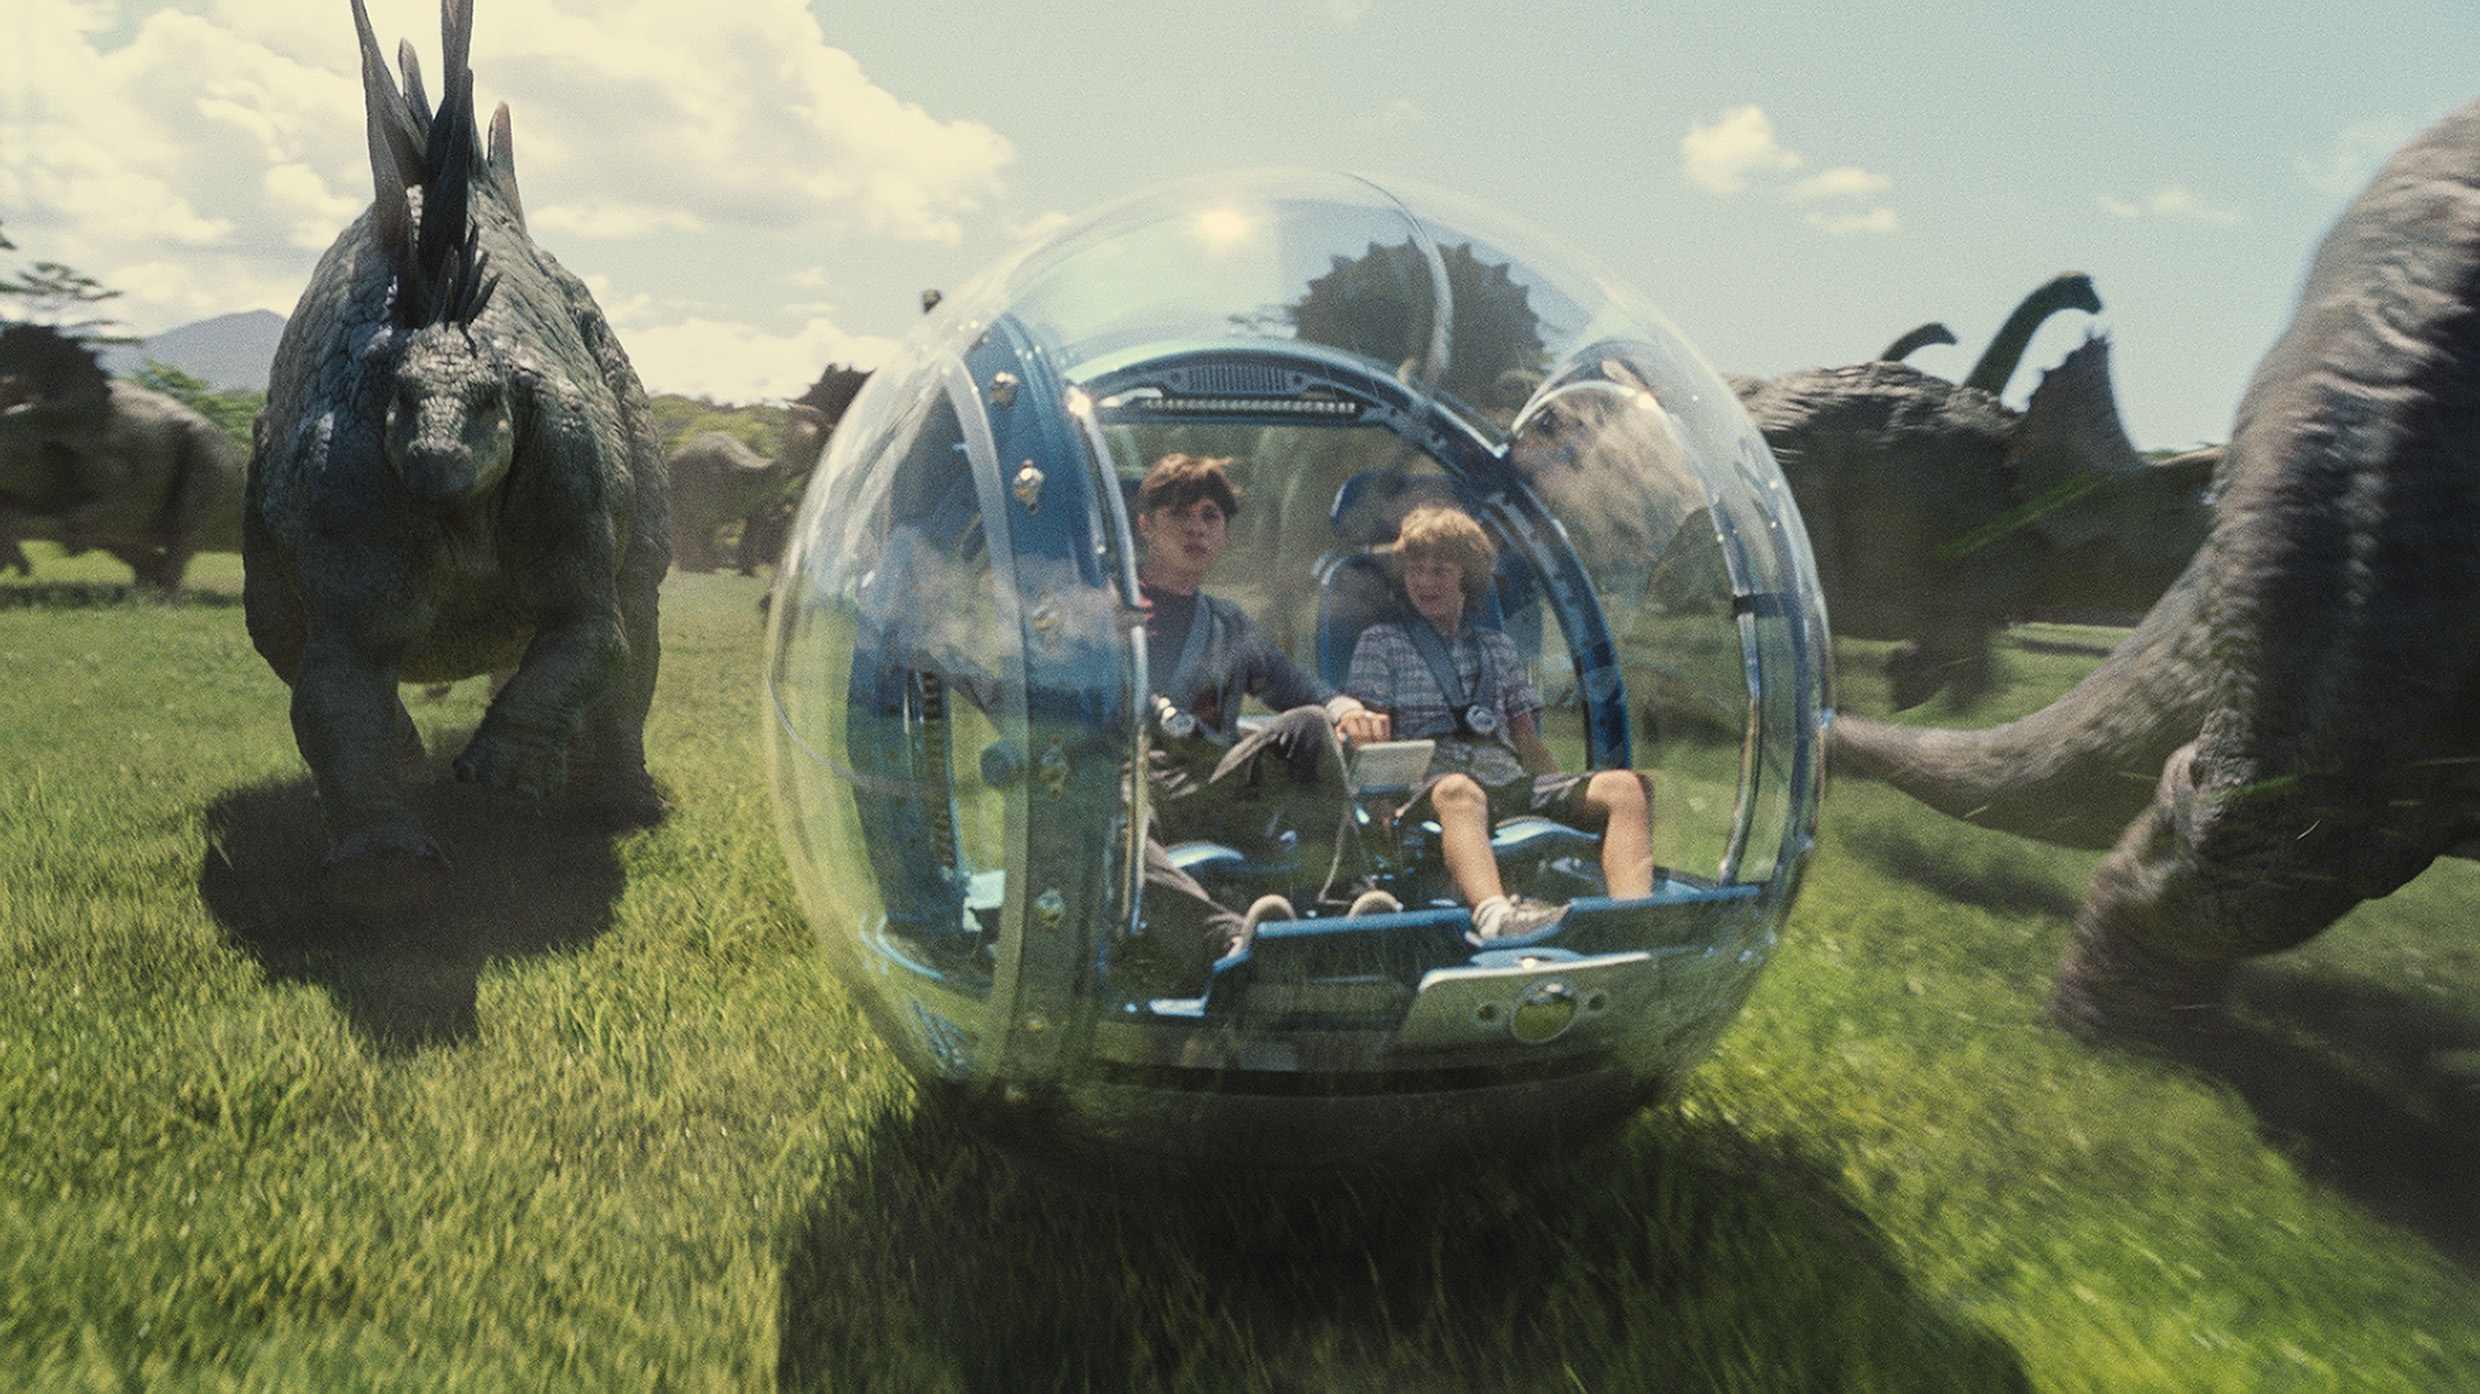 jurassic_world_25_xp_szn (1)